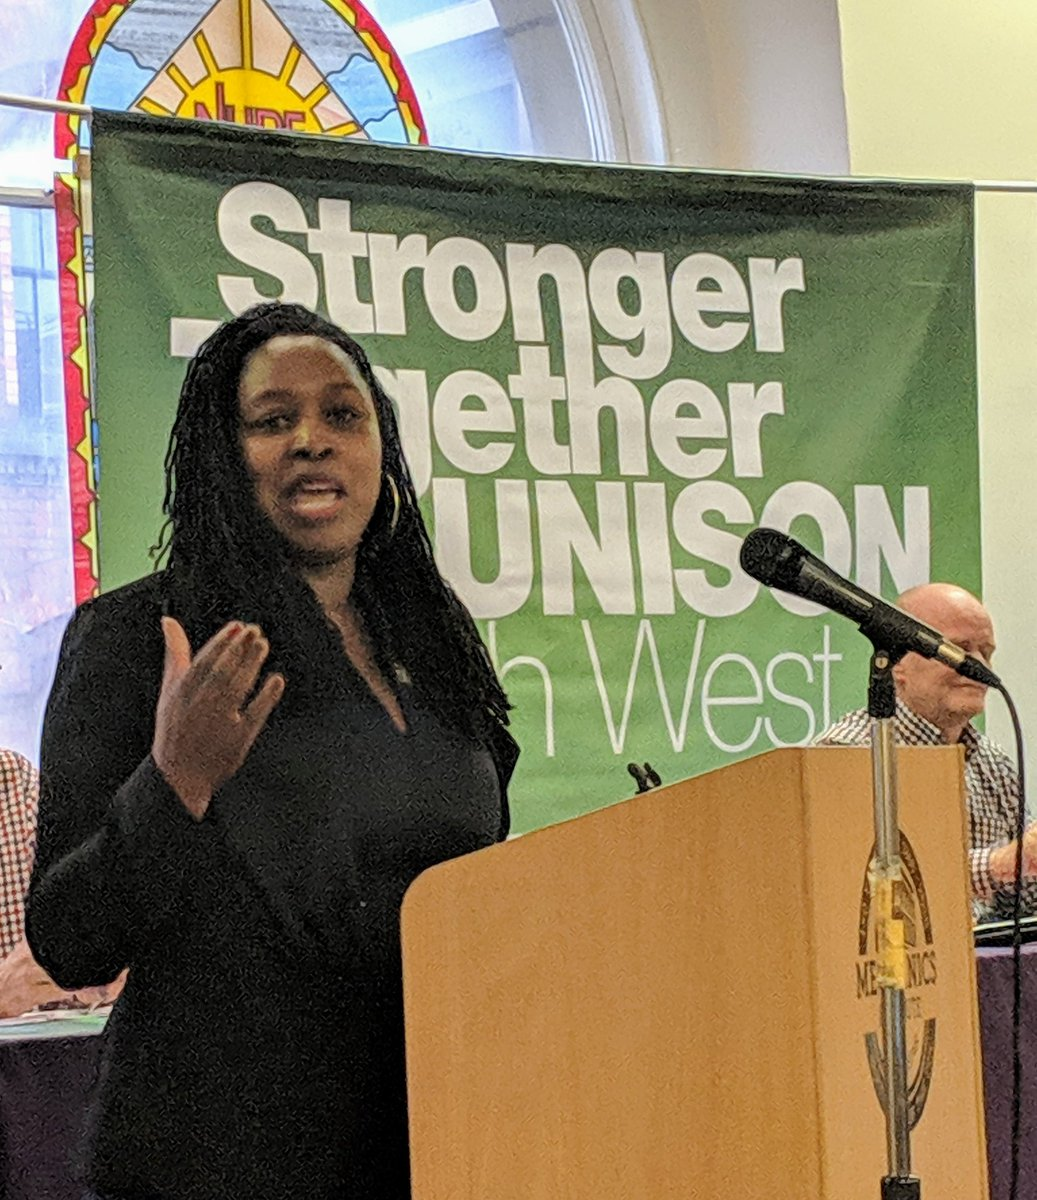 """The brilliant @DawnButlerBrent  """"if this were a developing country we'd be sending people over to investigate!"""" @NorthWestUNISON #skillsforstrength"""